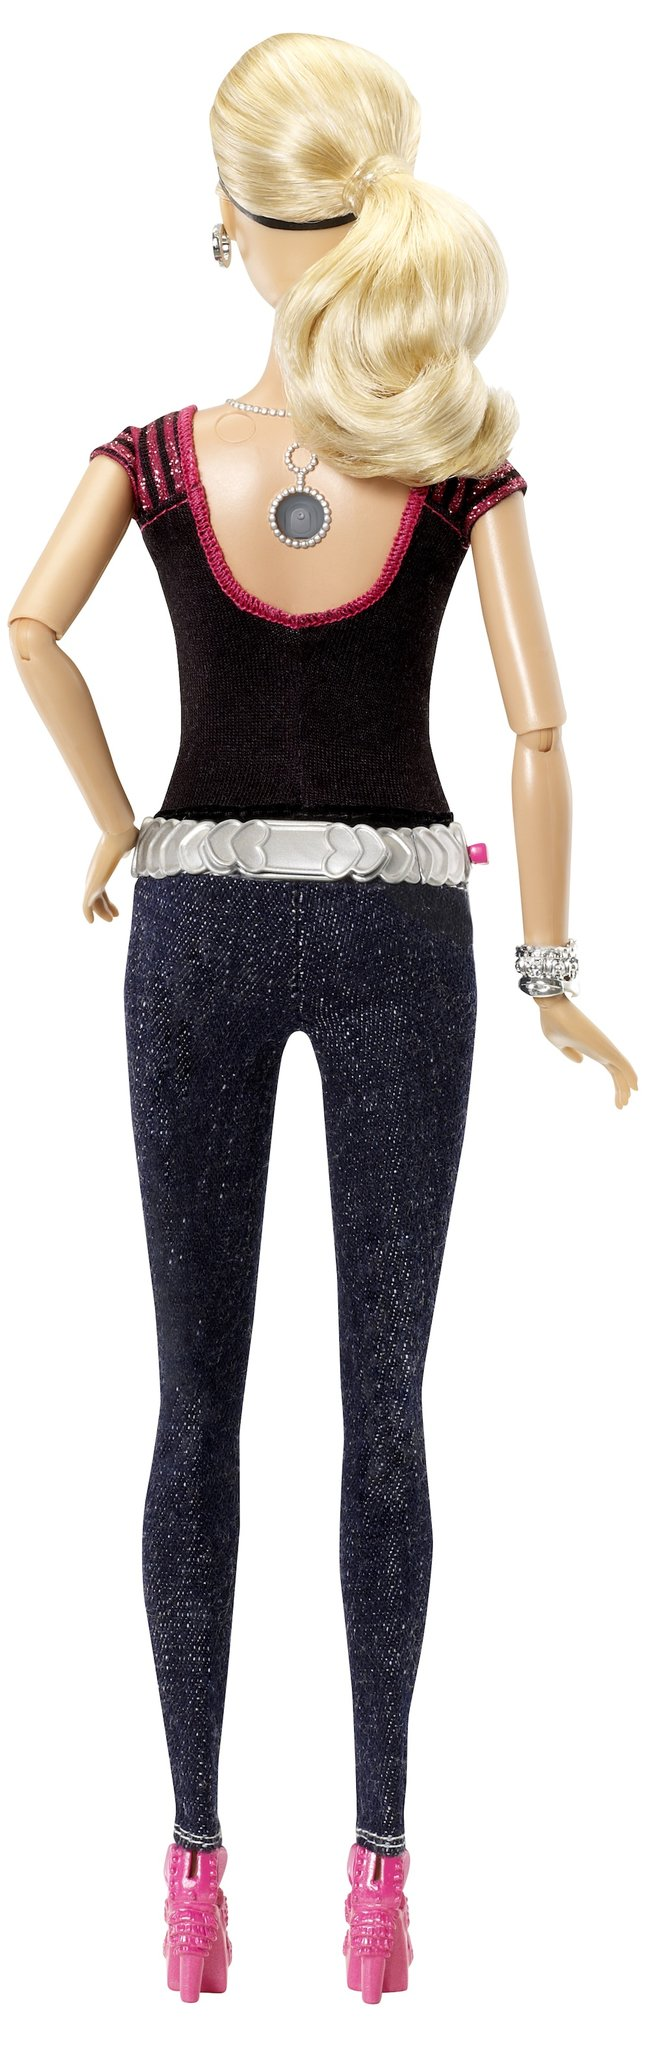 Barbie Photo Fashion Doll has hidden camera and LCD T-shirt display - photo 3